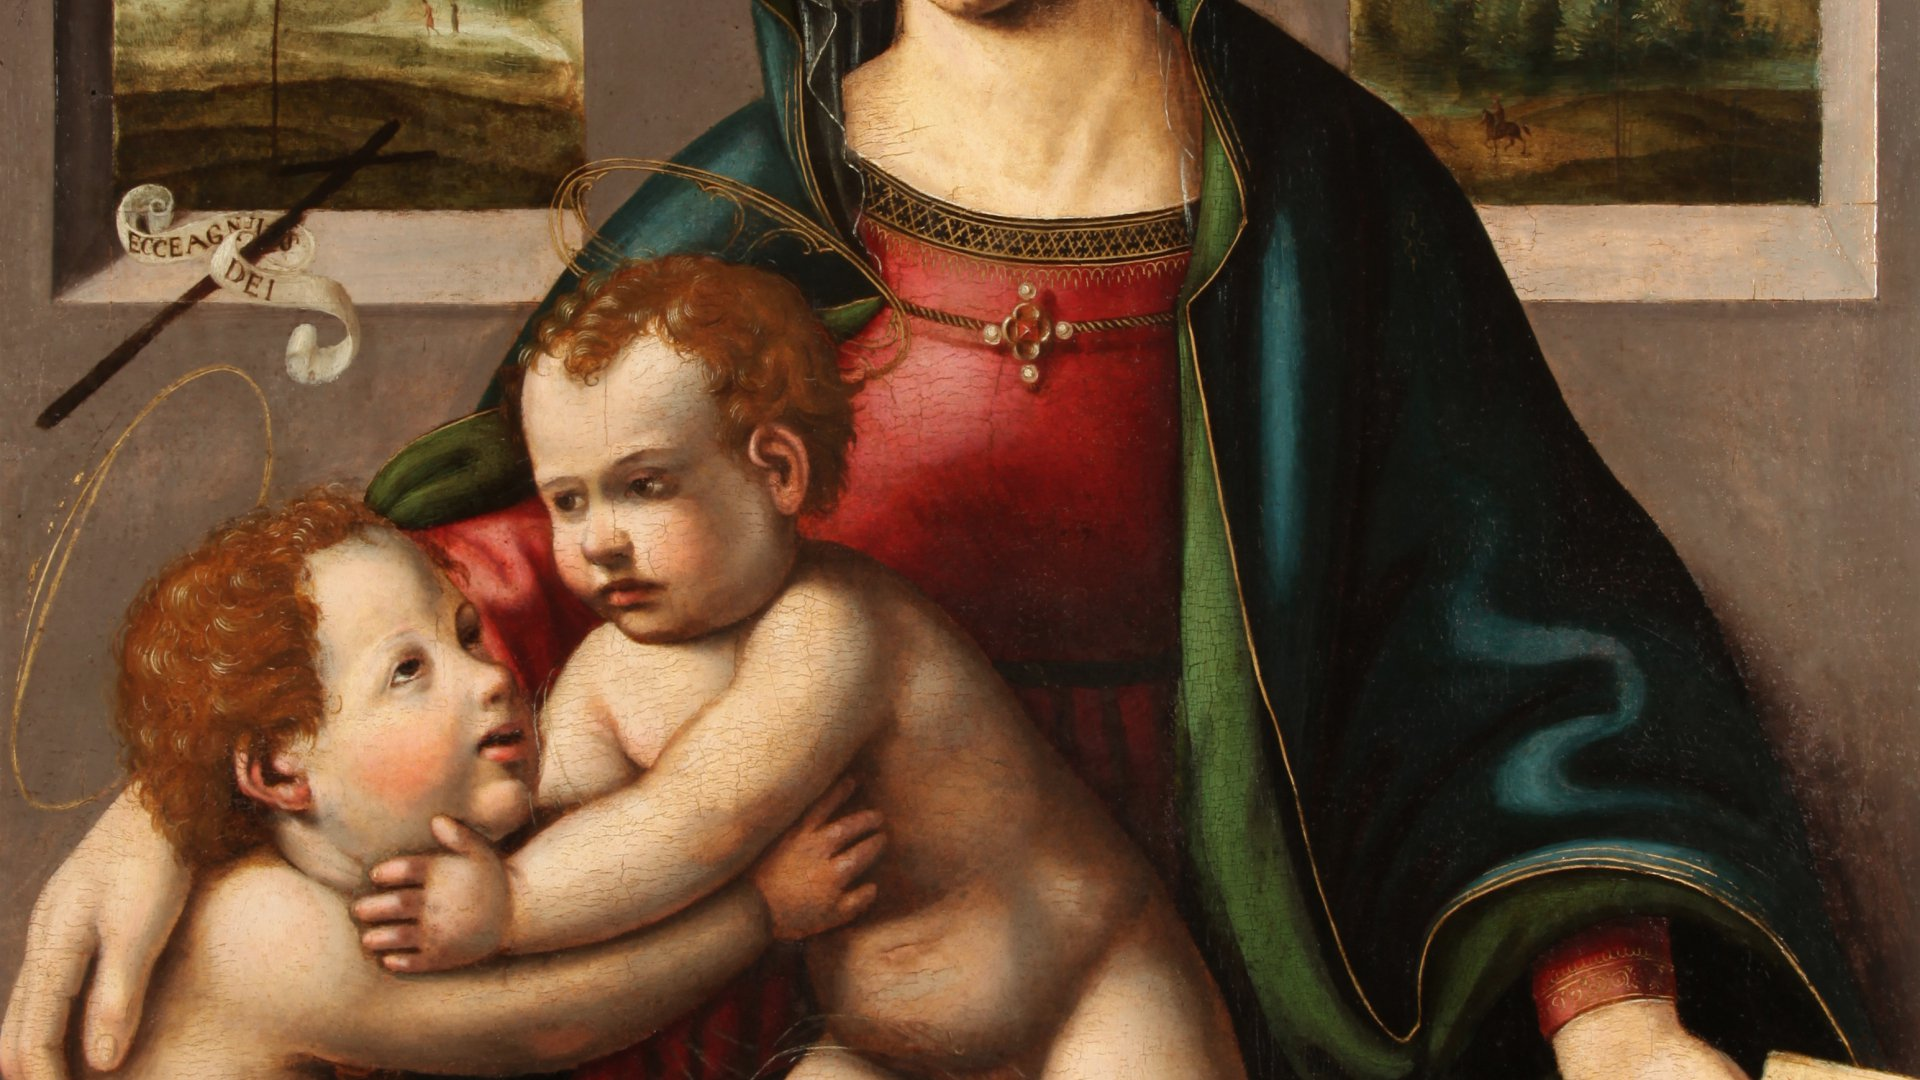 The Virgin and Child with Little Saint Jean